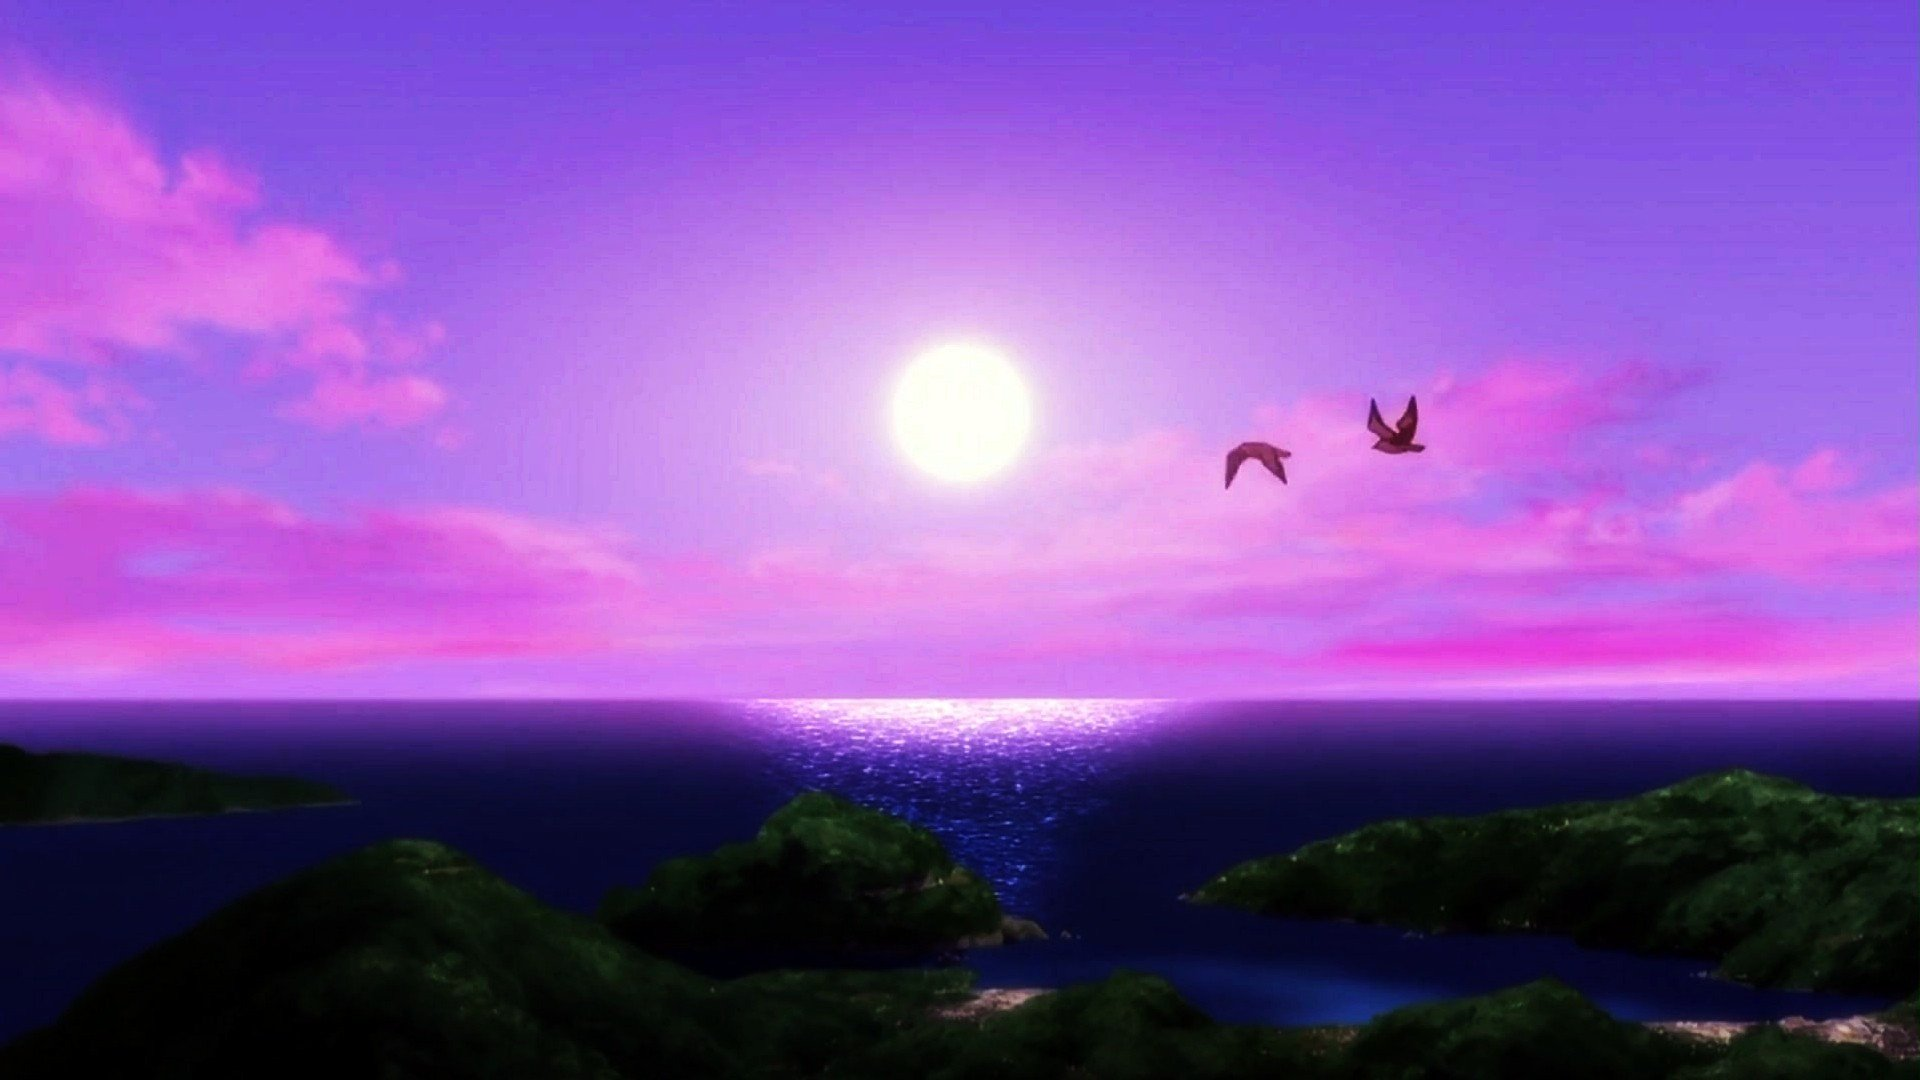 Purple Sunset Ocean Hd Wallpapers Downloand Now